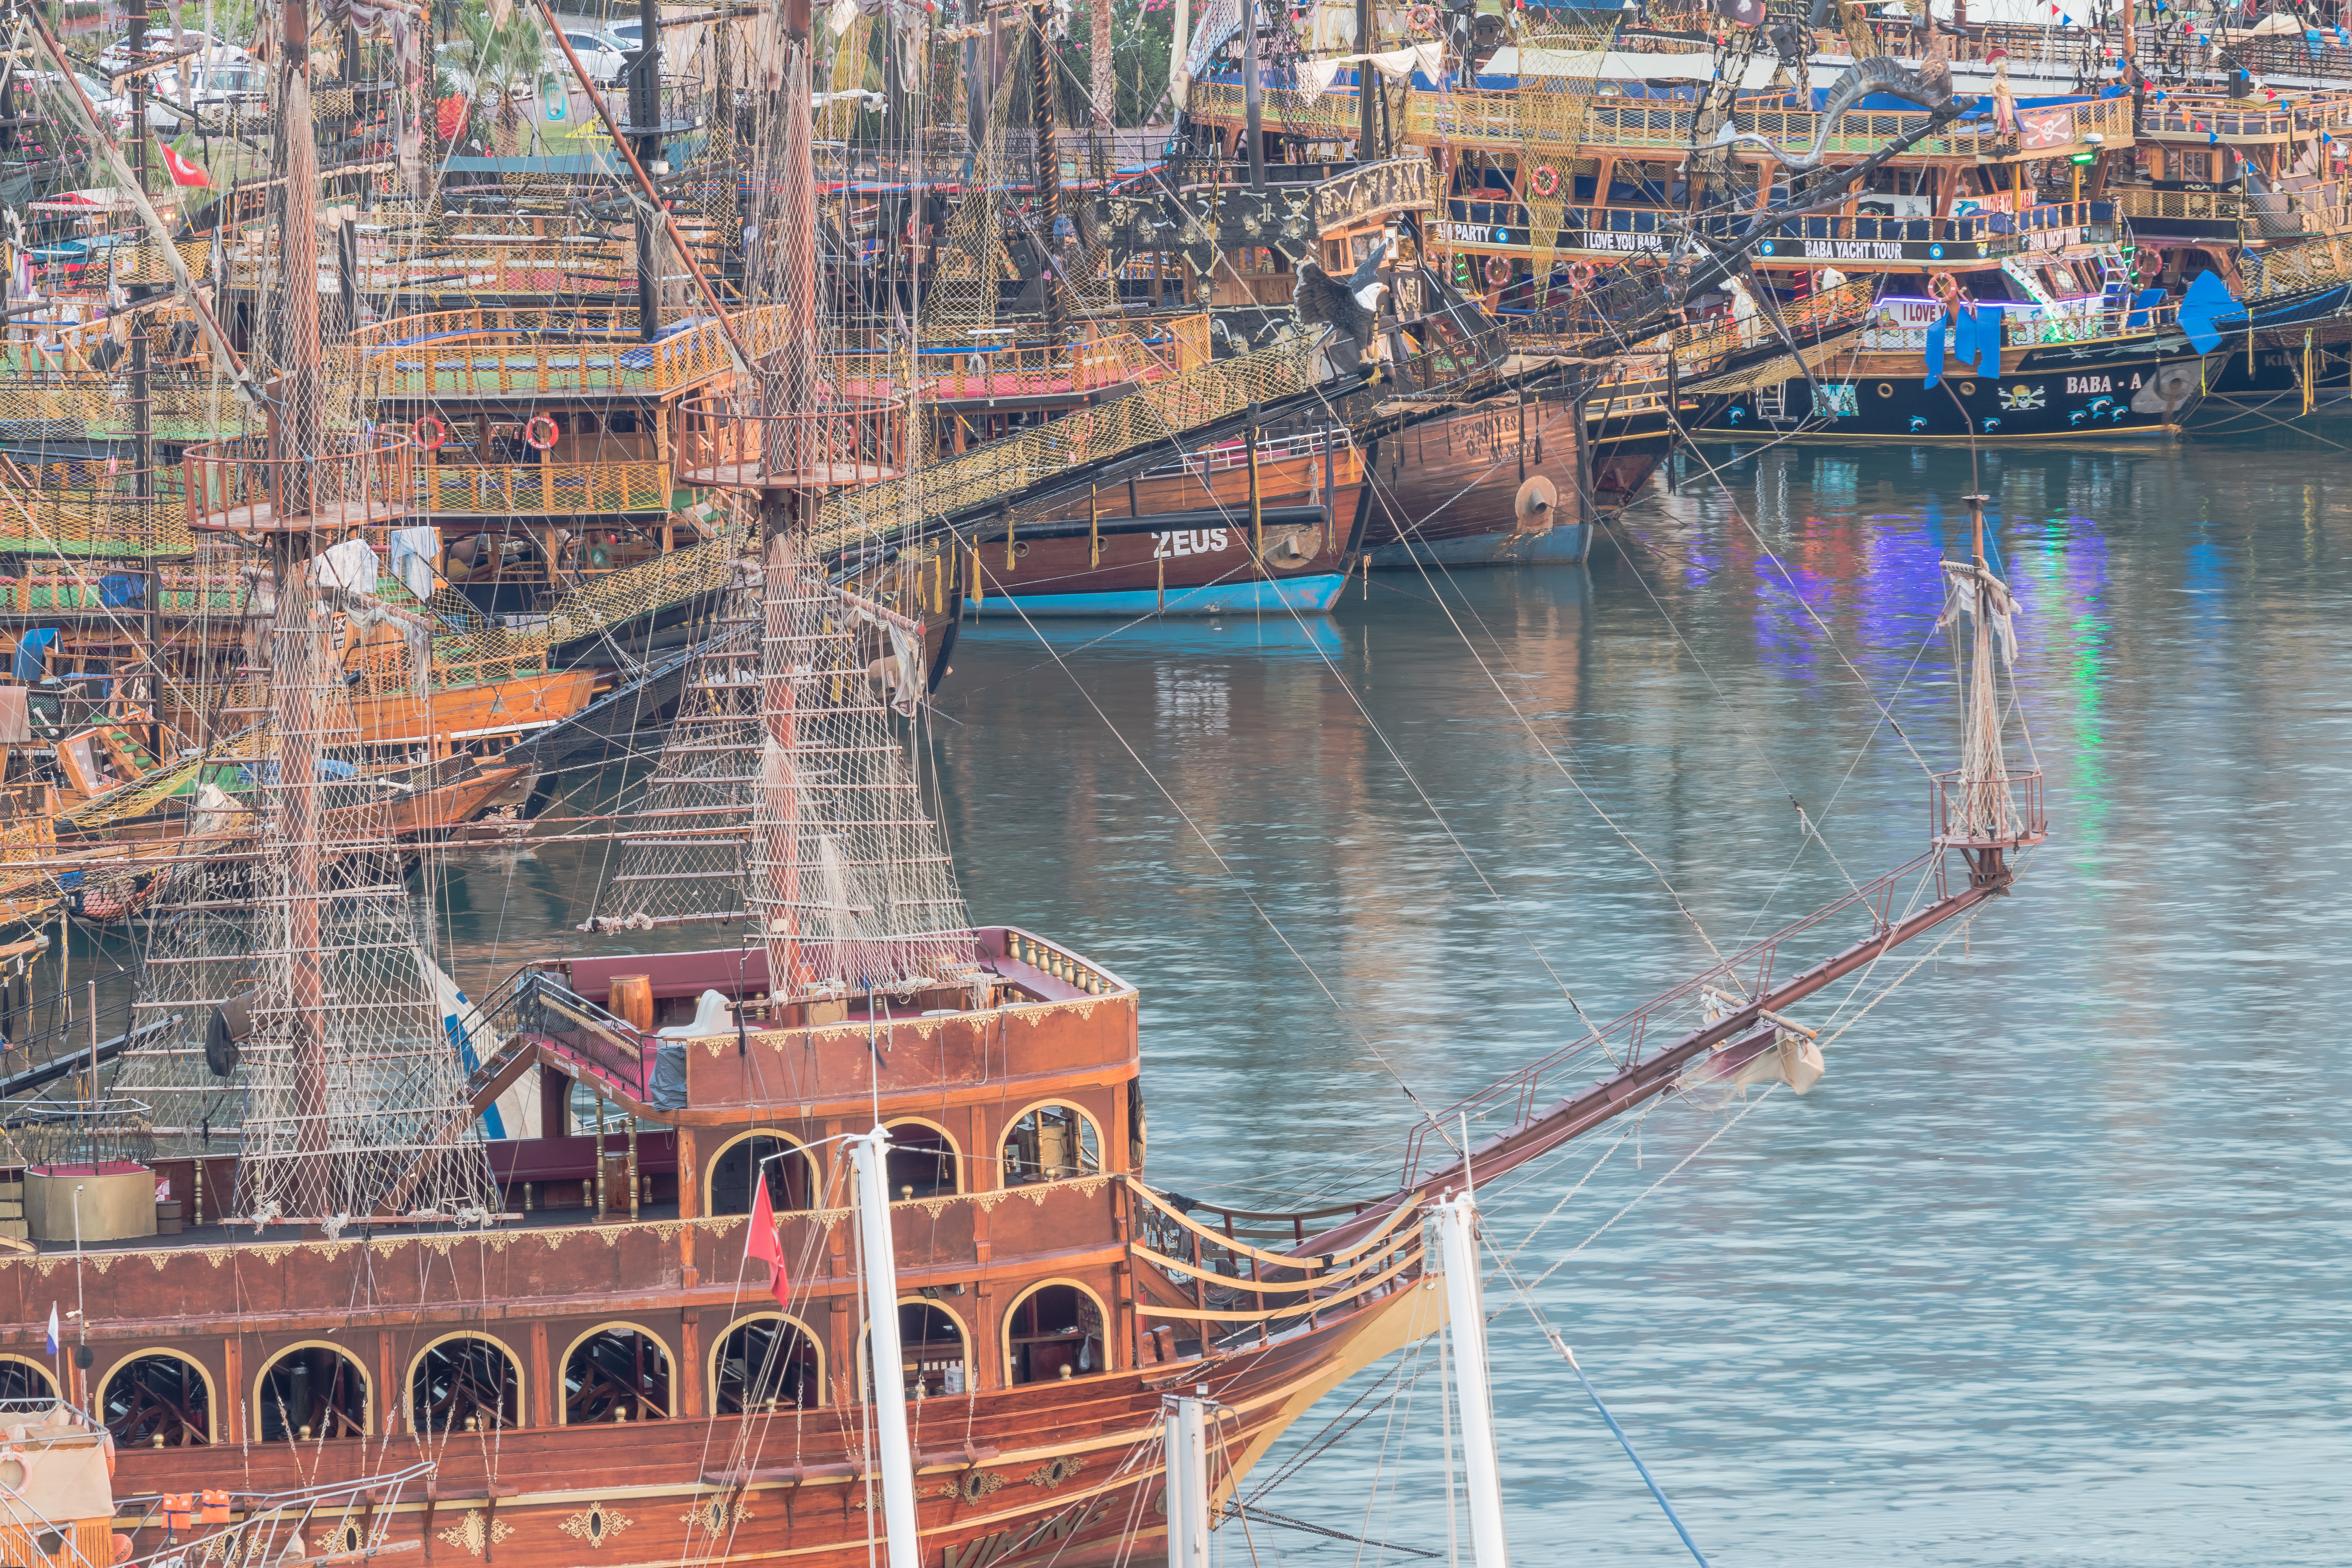 Pirate ships in Alanya port